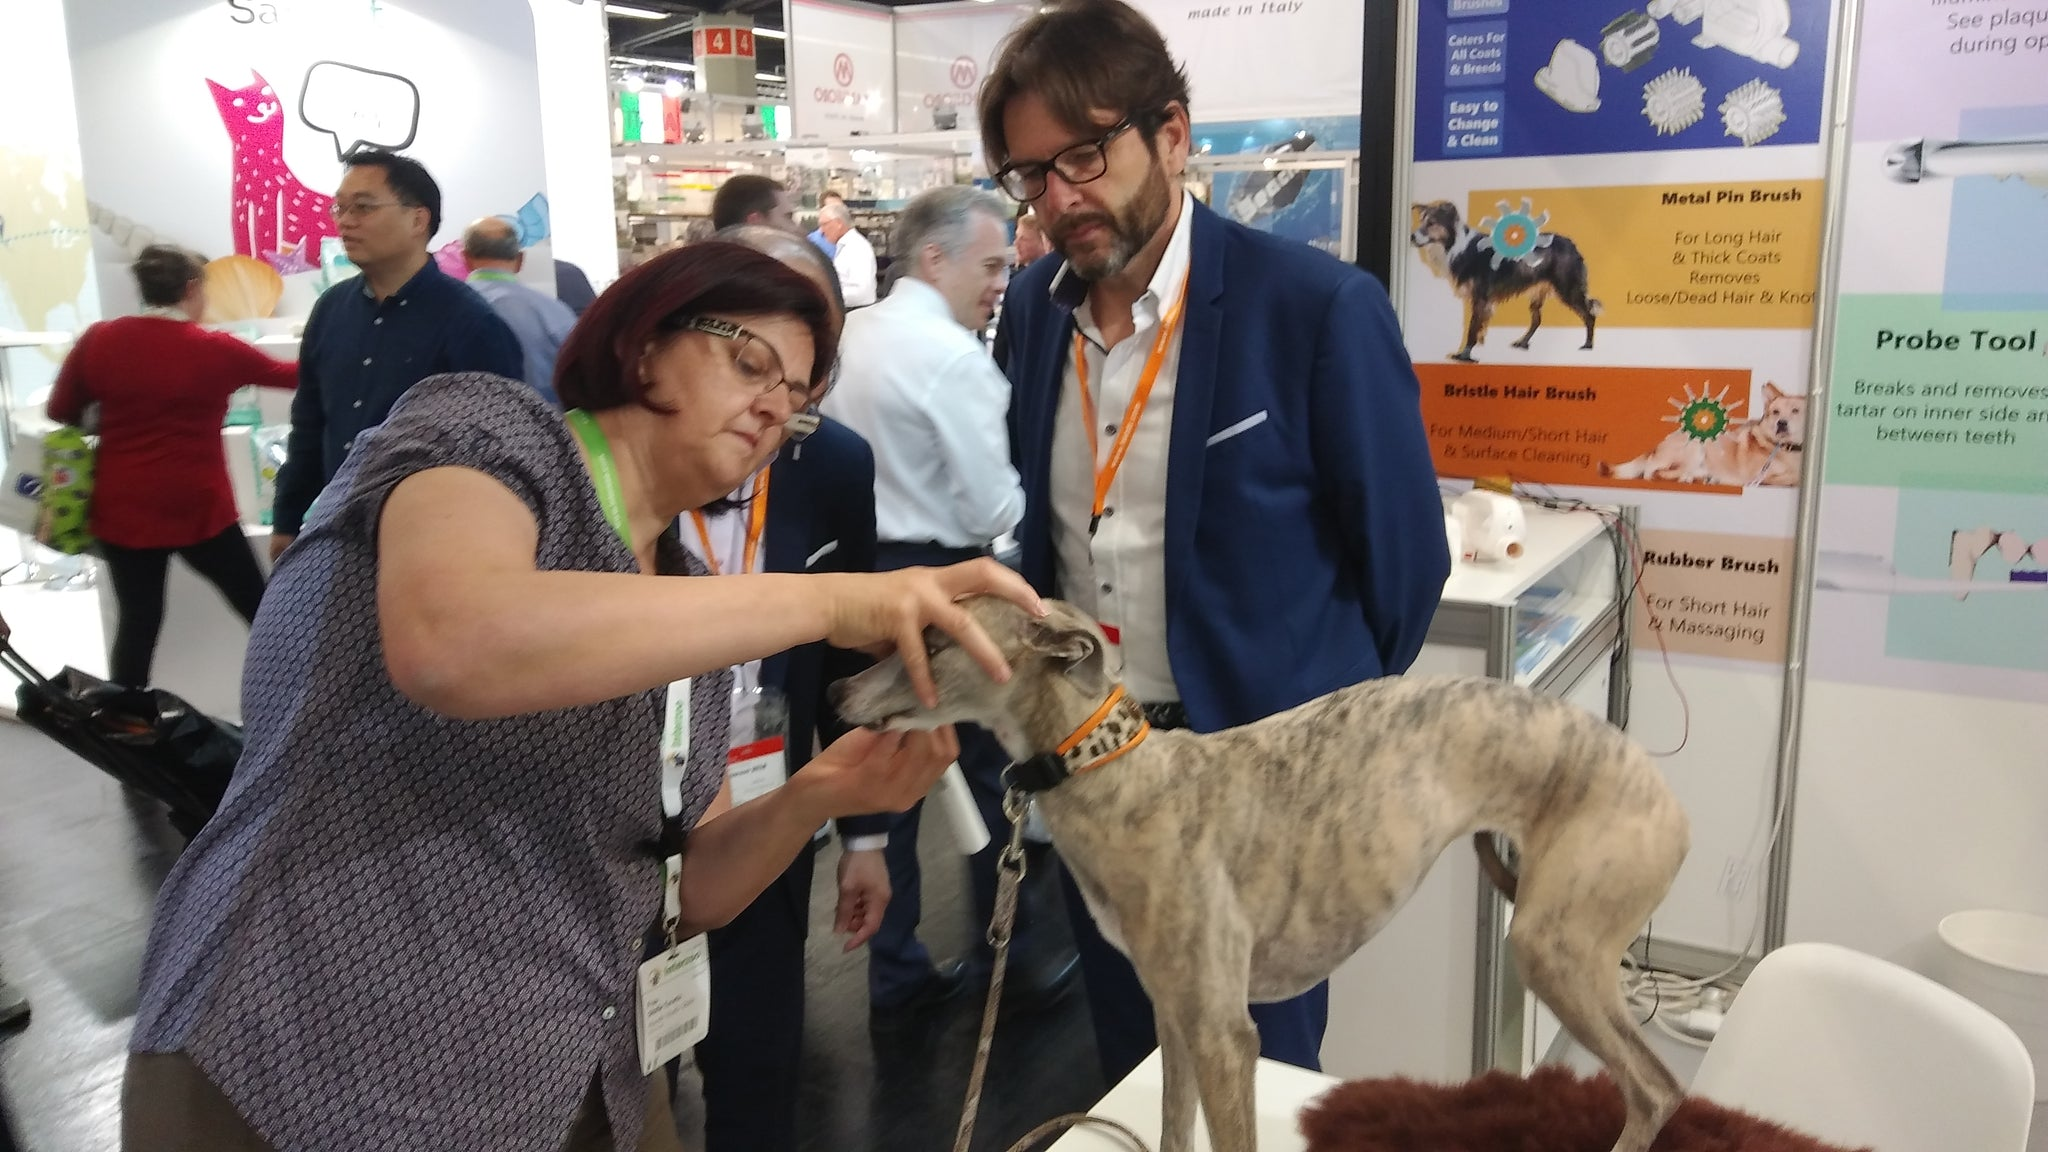 Pet-inno products showcases InnoBrush and InnoSonic at Interzoo 2018